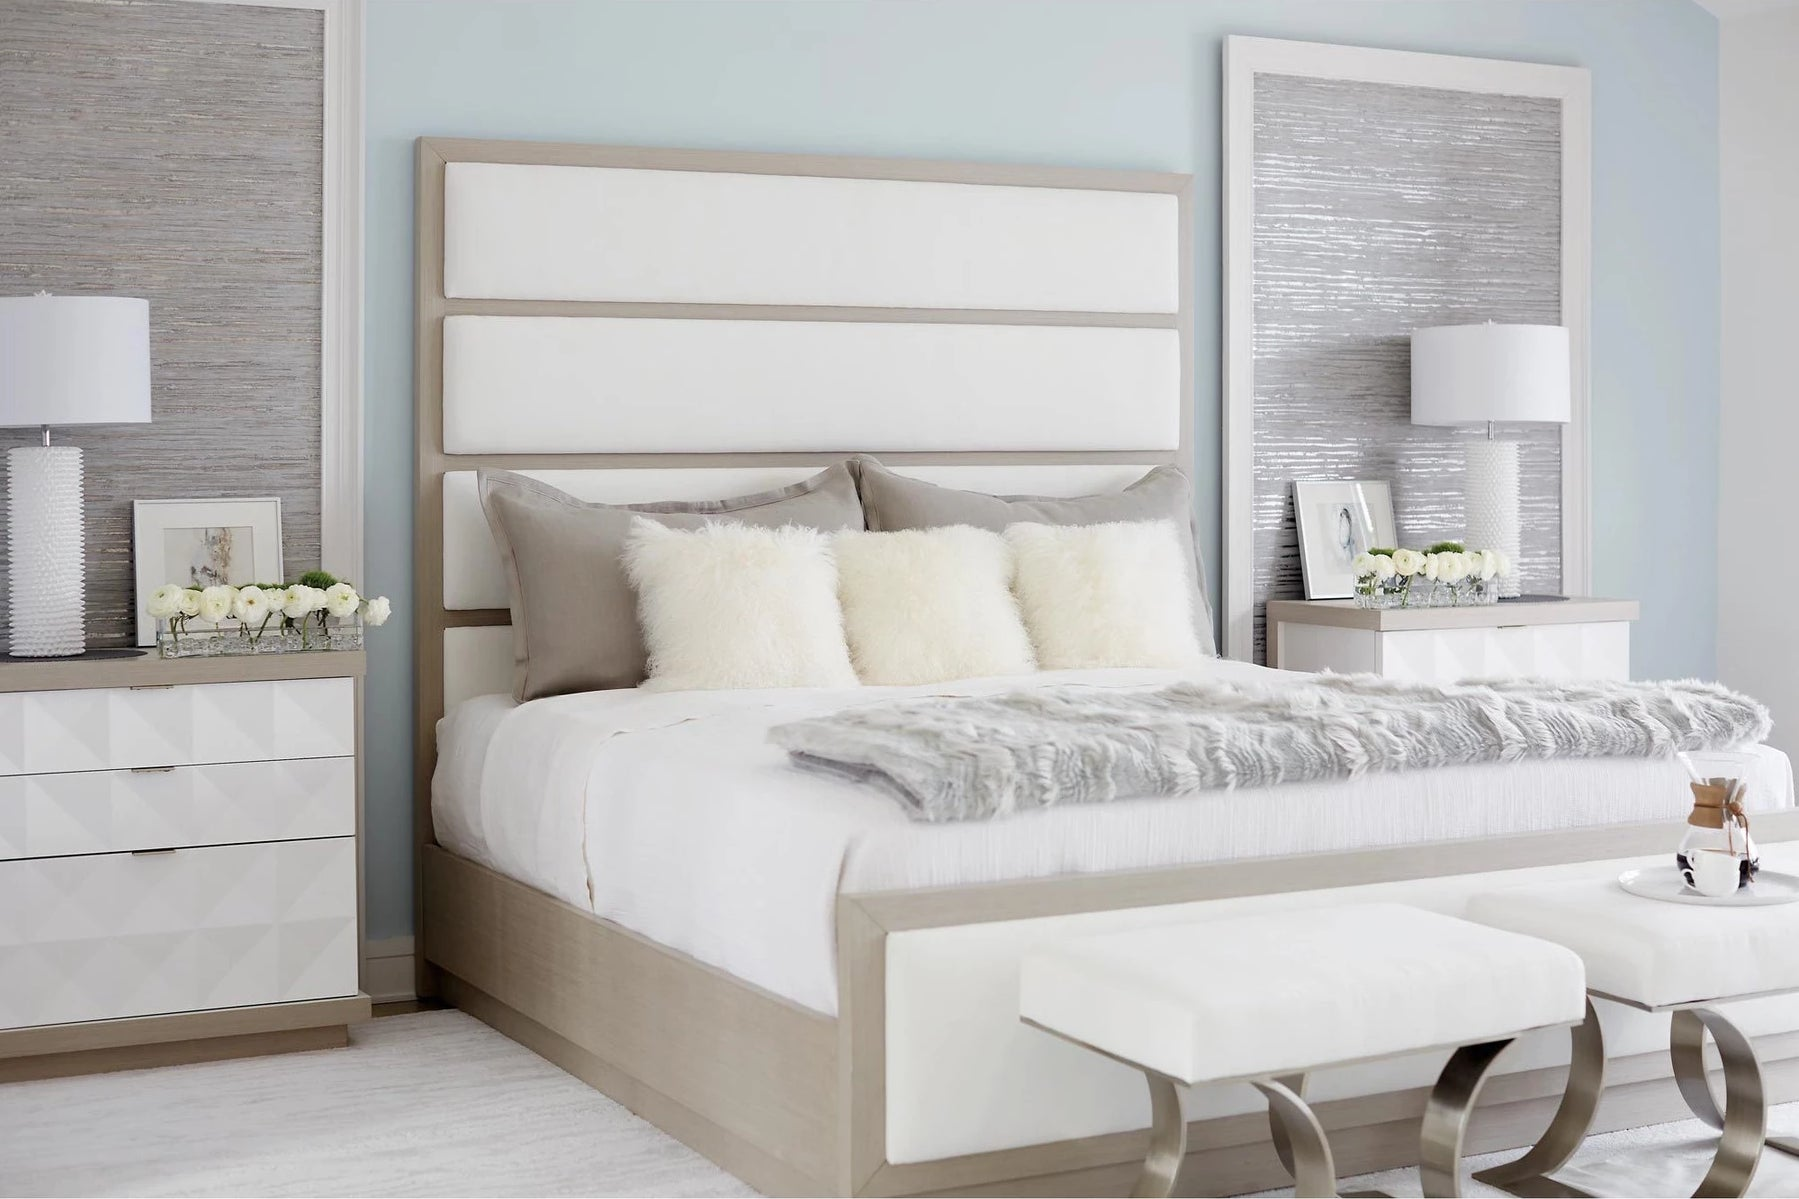 Planning To Design Your Beautiful Bedroom? Don't Miss These Tips